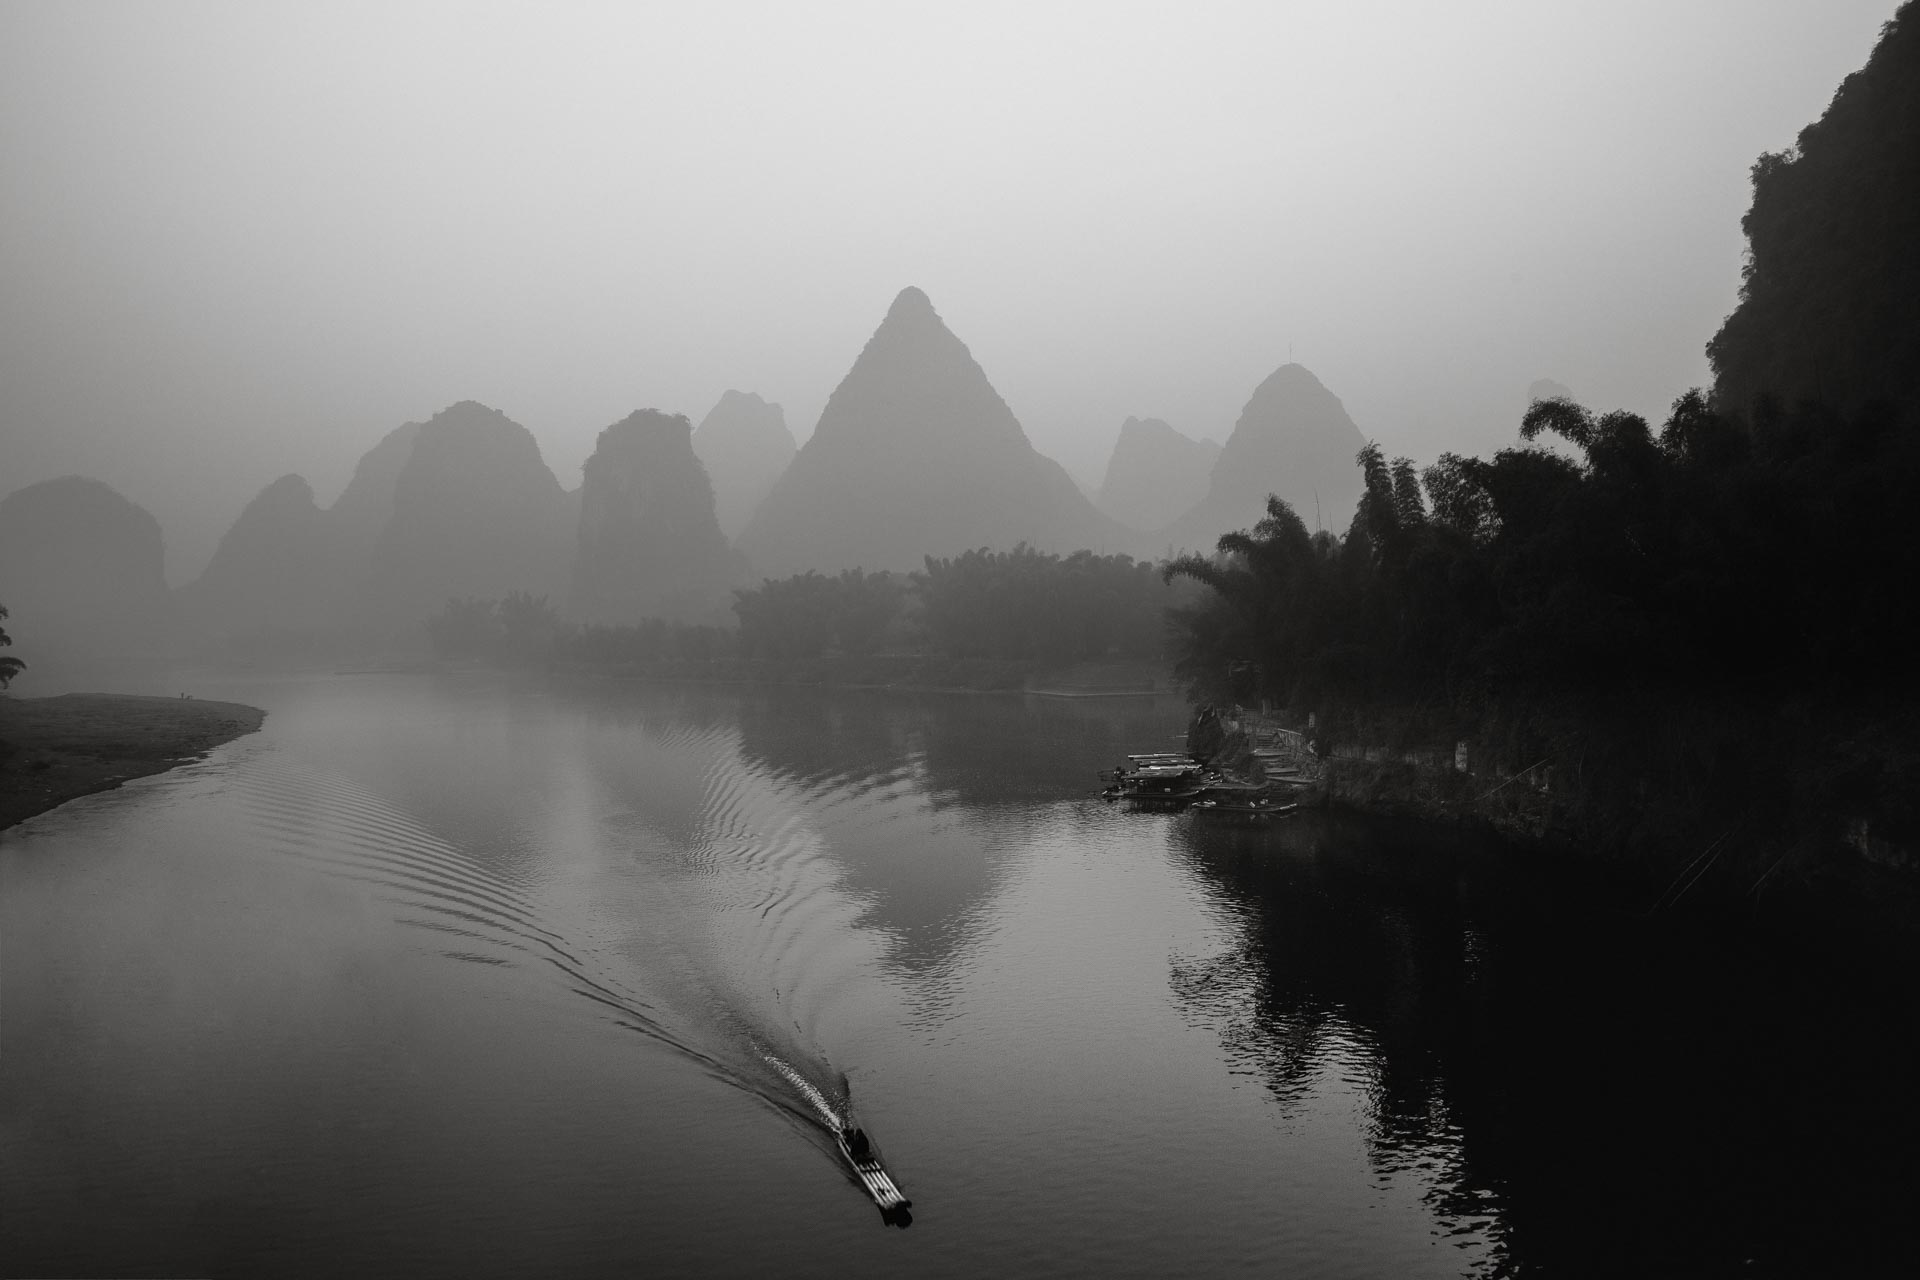 Sunrise on the Li River. China